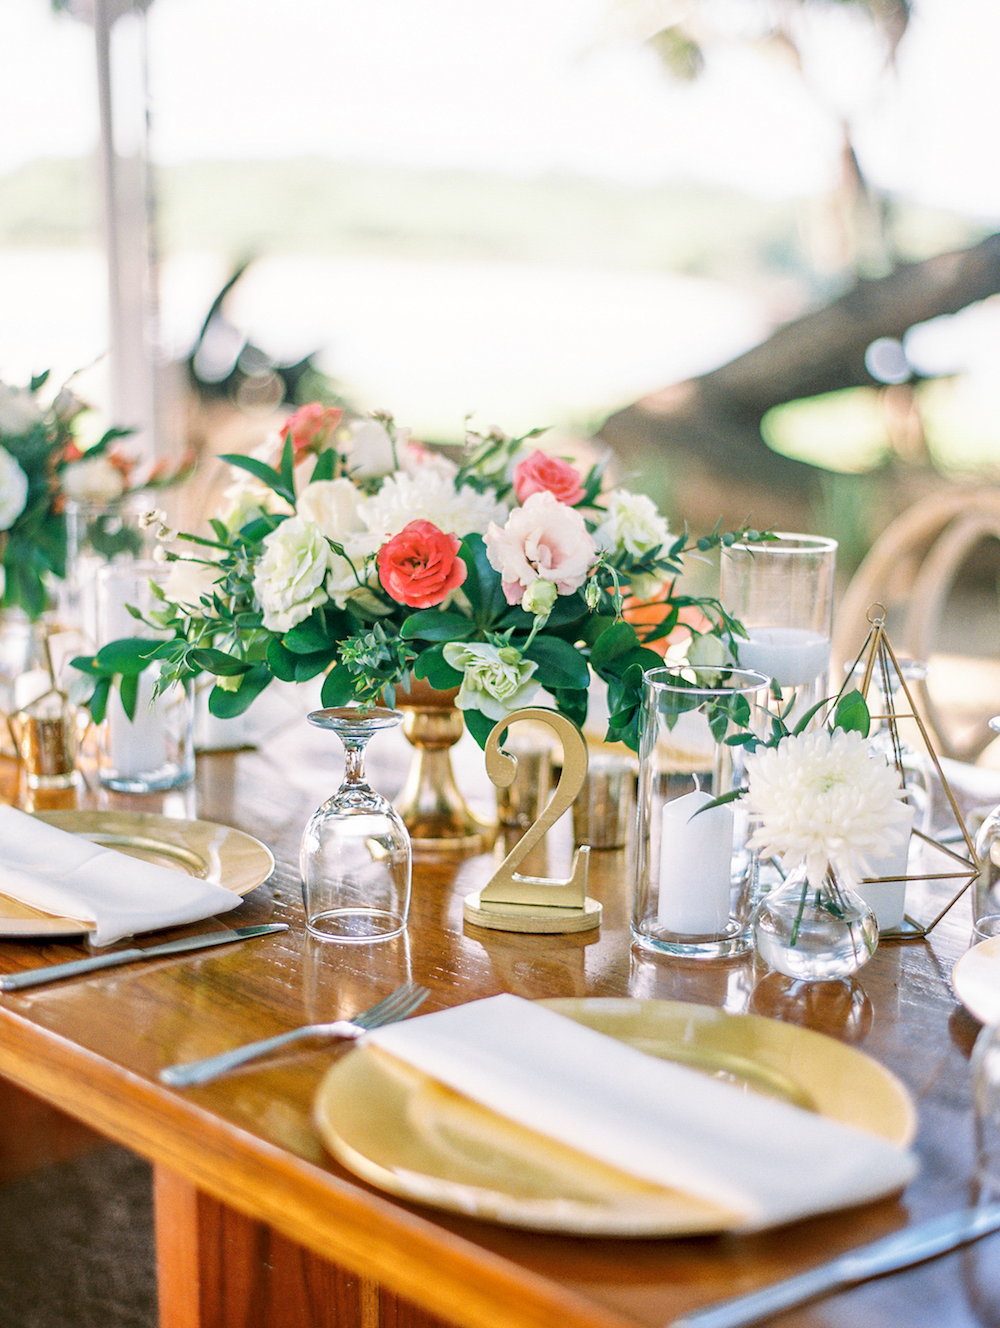 catherineannphotographywedding8418jessicapeterfilm26.jpg